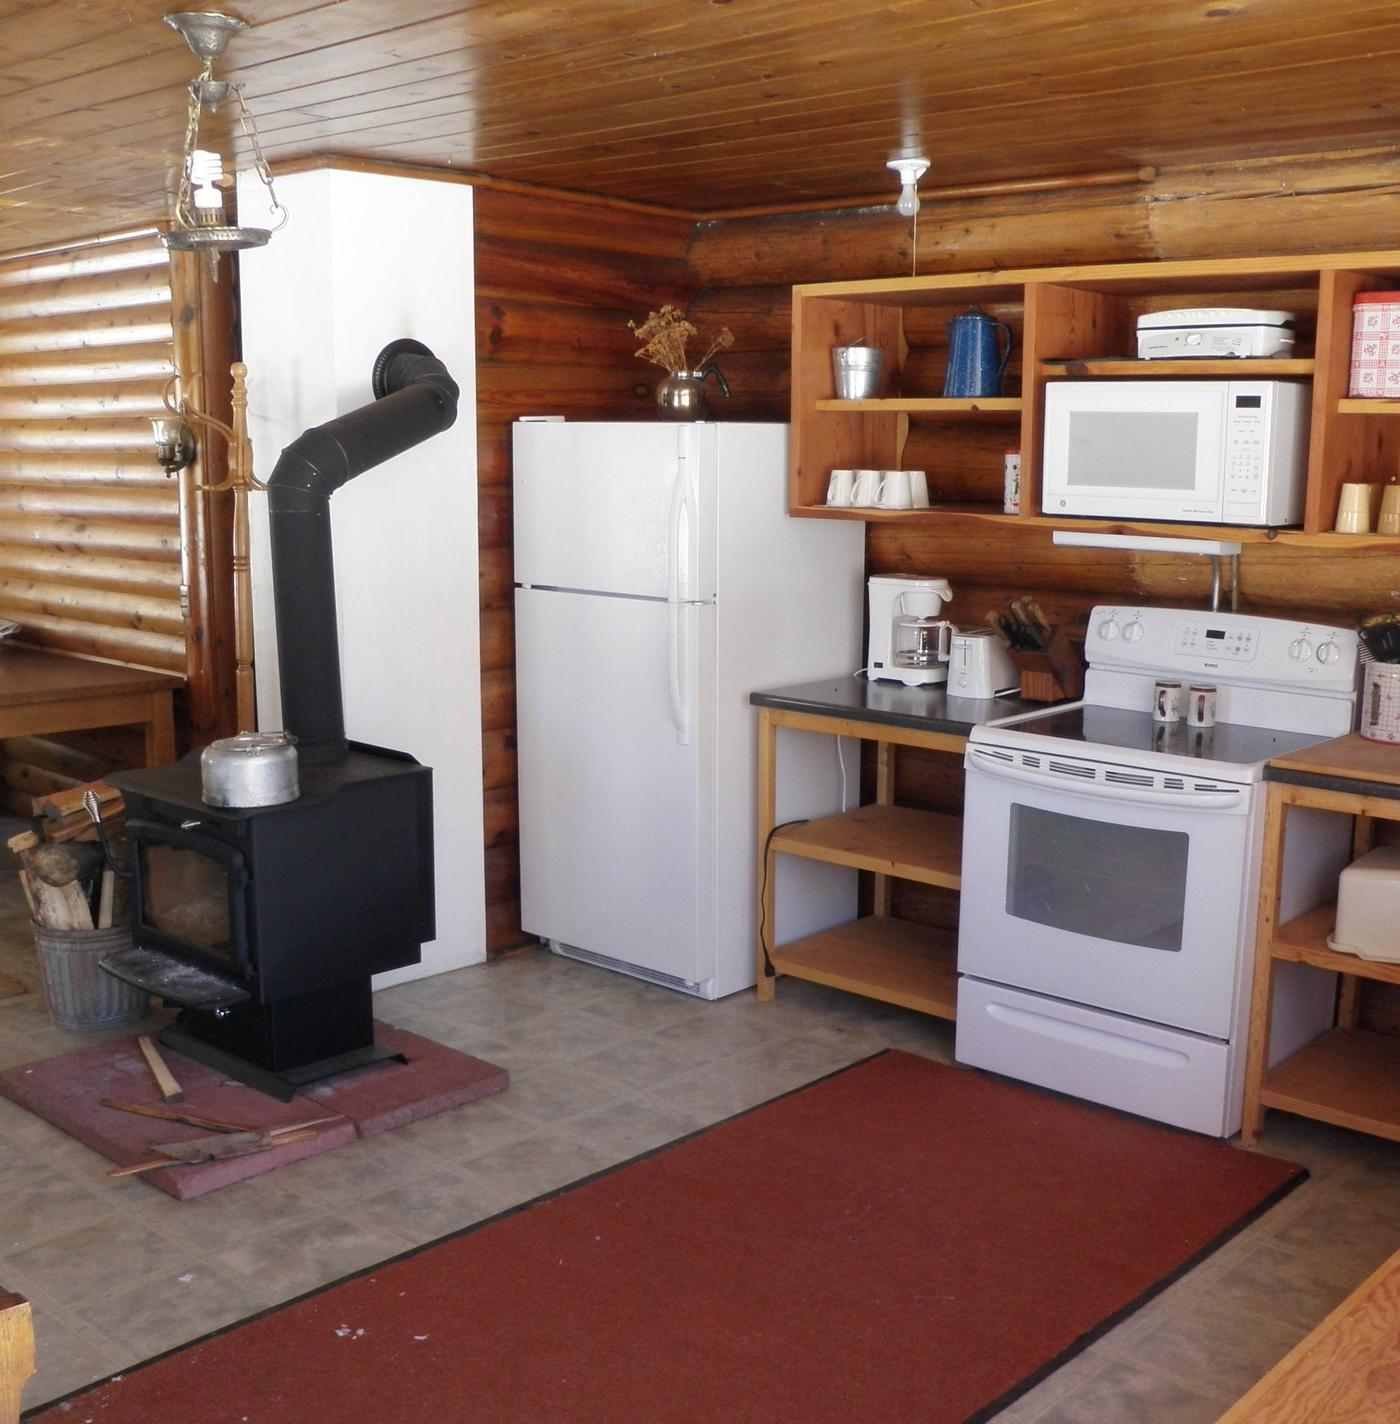 Kitchen and woodstove in the Lone Cone CabinView of kitchen and woodstove in the Lone Cone Cabin